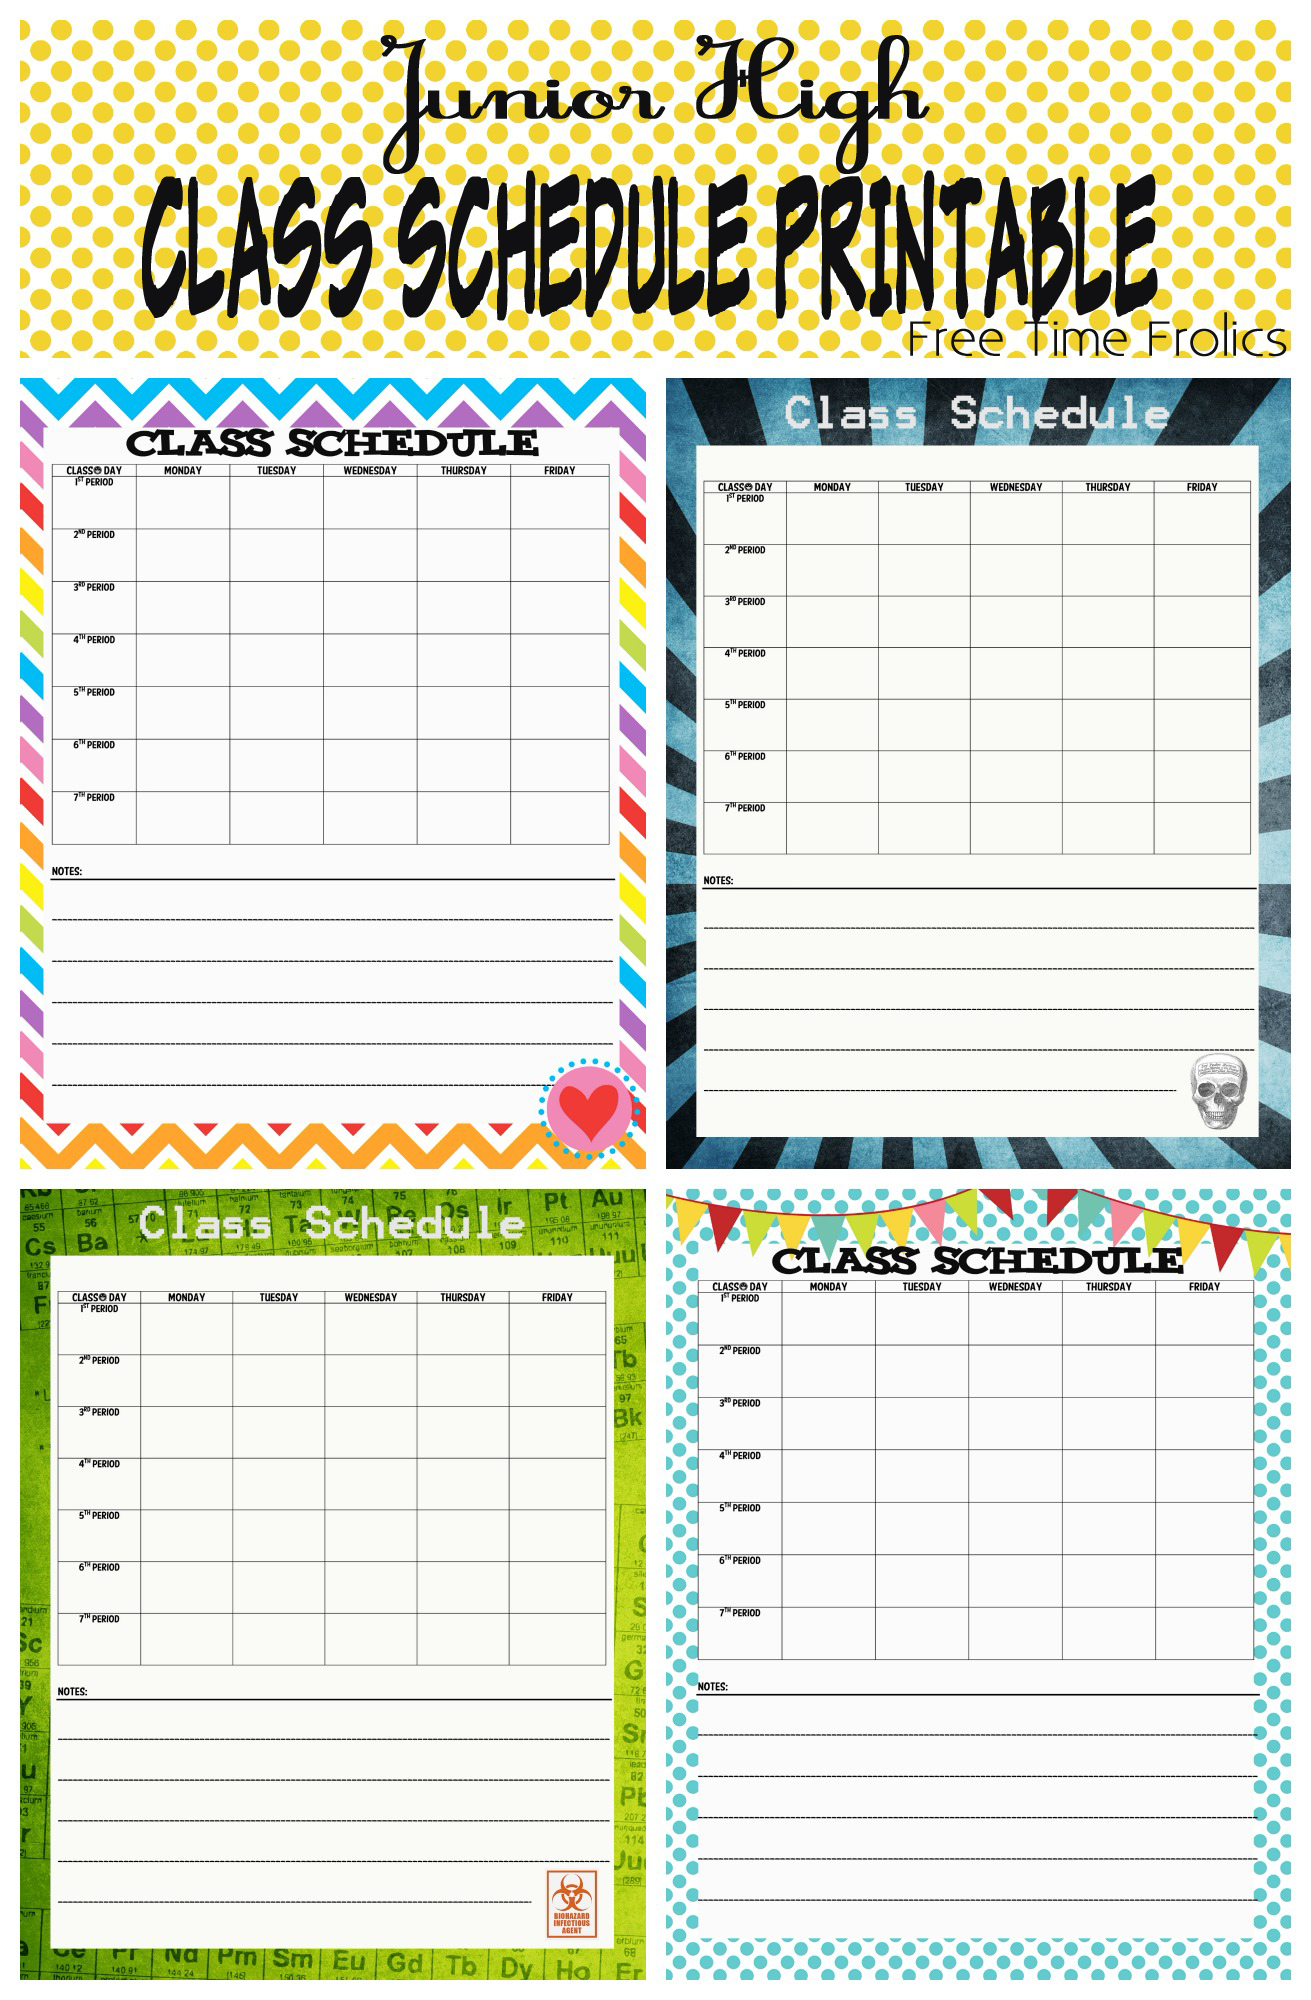 School Schedule Printable Back To School Series